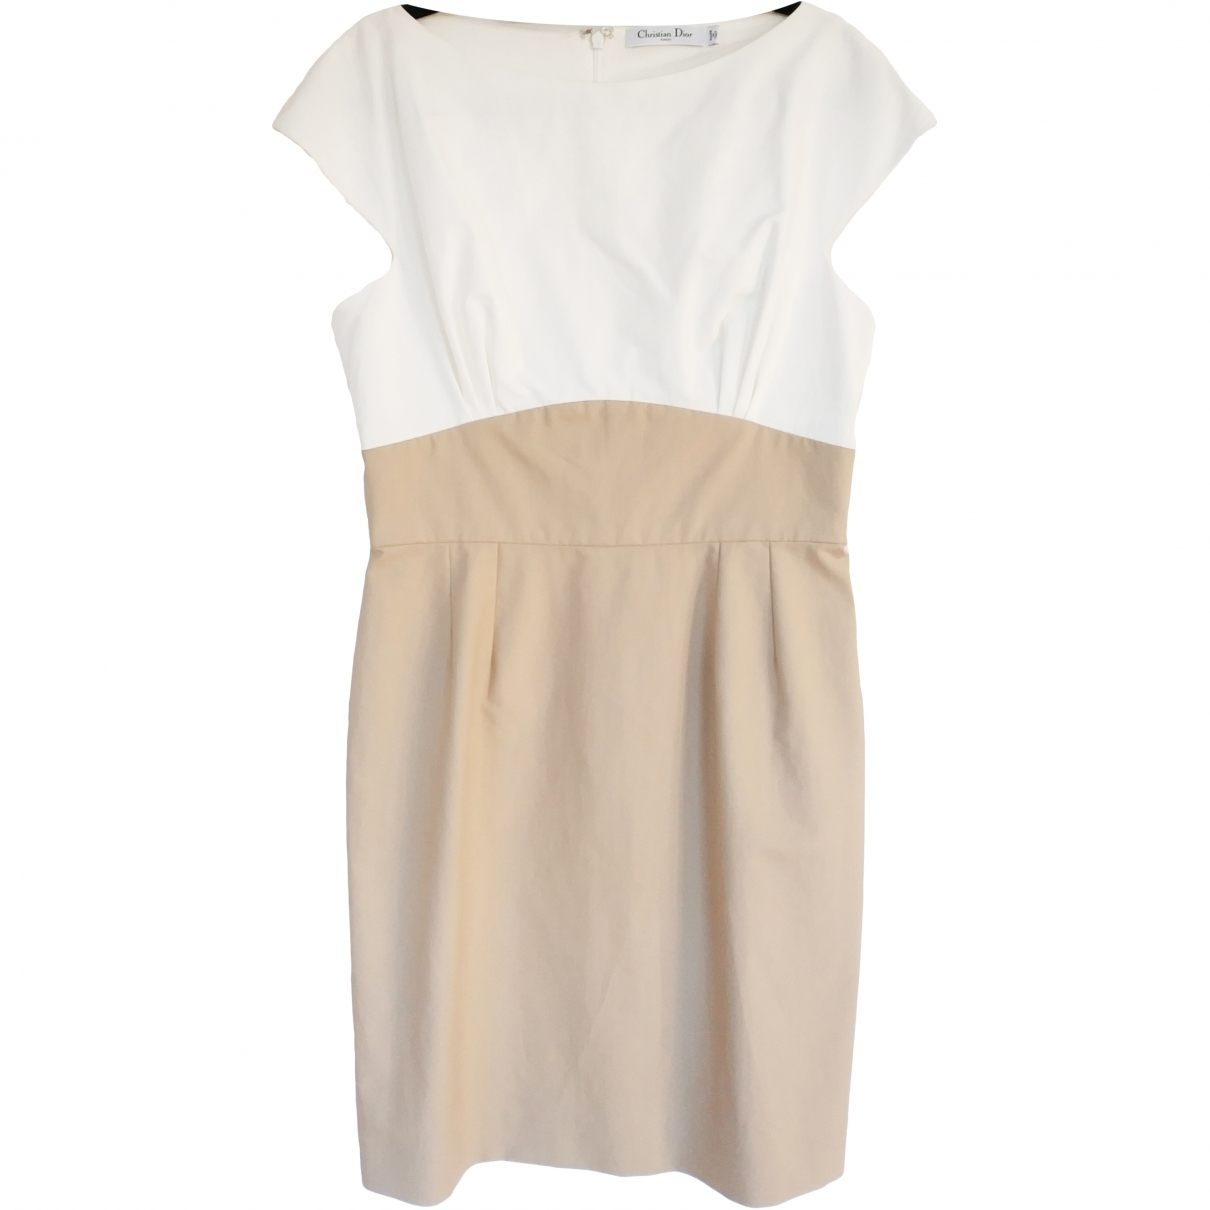 Dior \N Beige Cotton dress for Women 44 FR